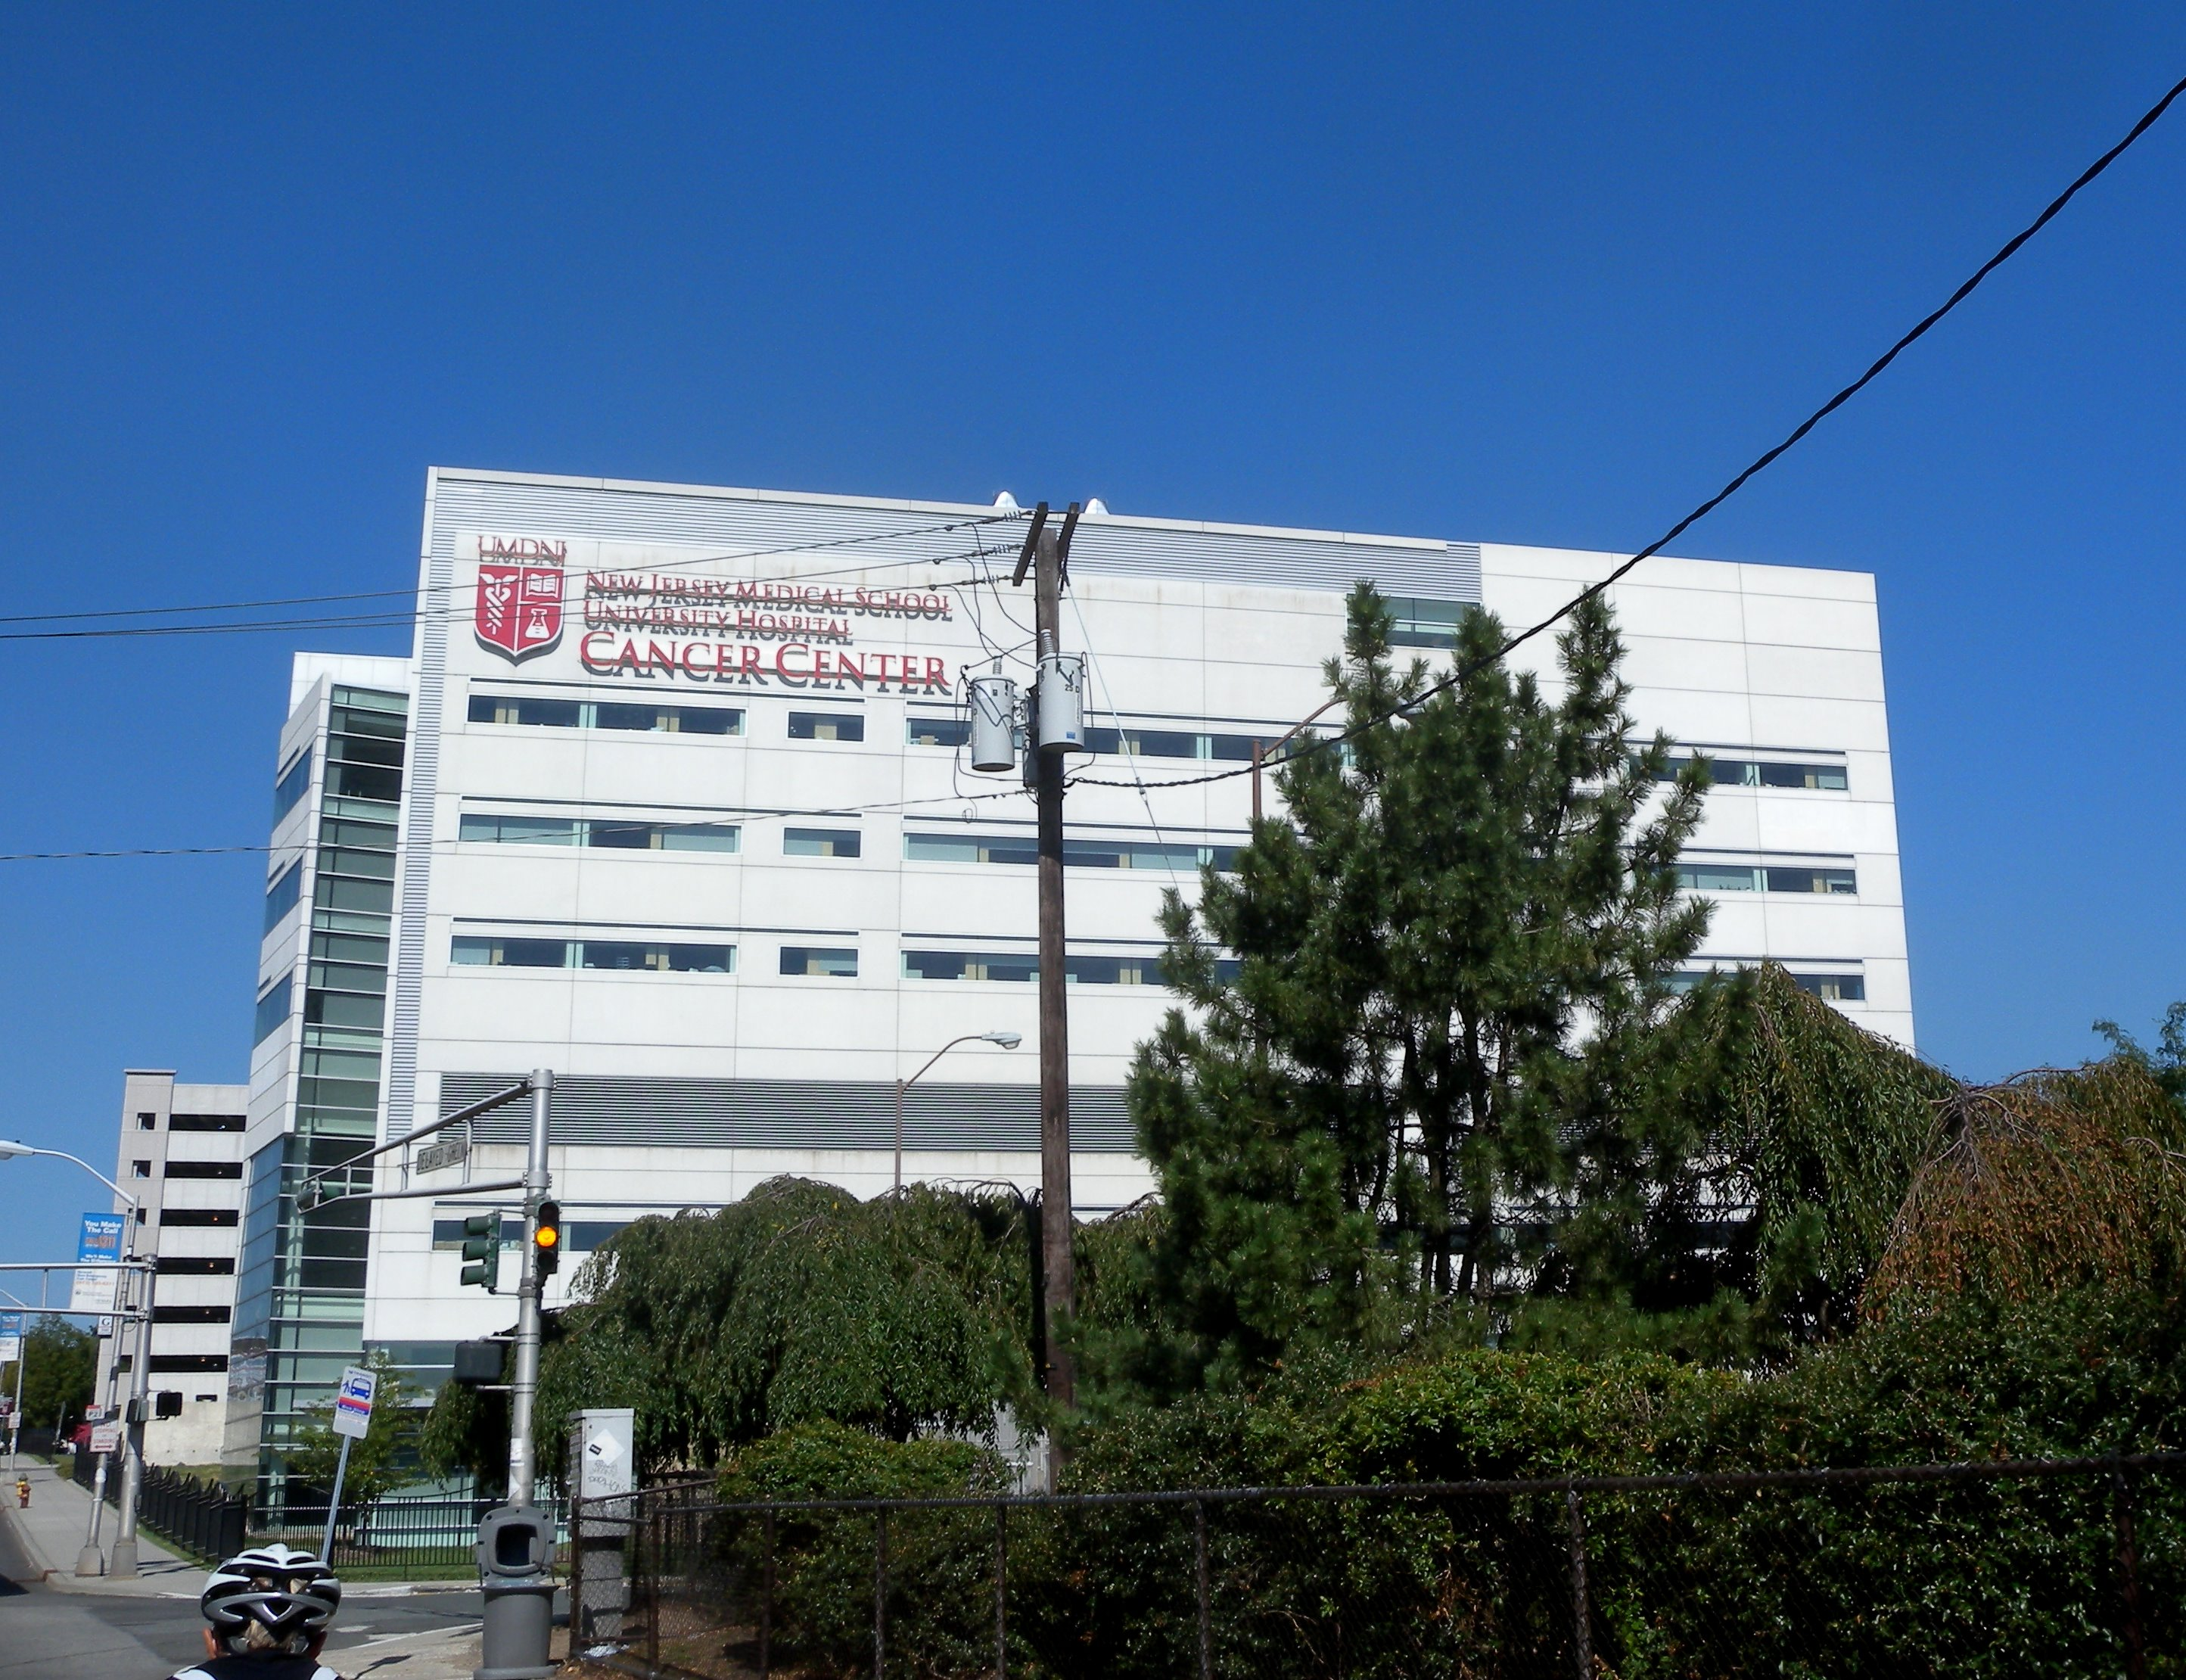 File:UMDNJ Cancer Center jeh jpg - Wikimedia Commons